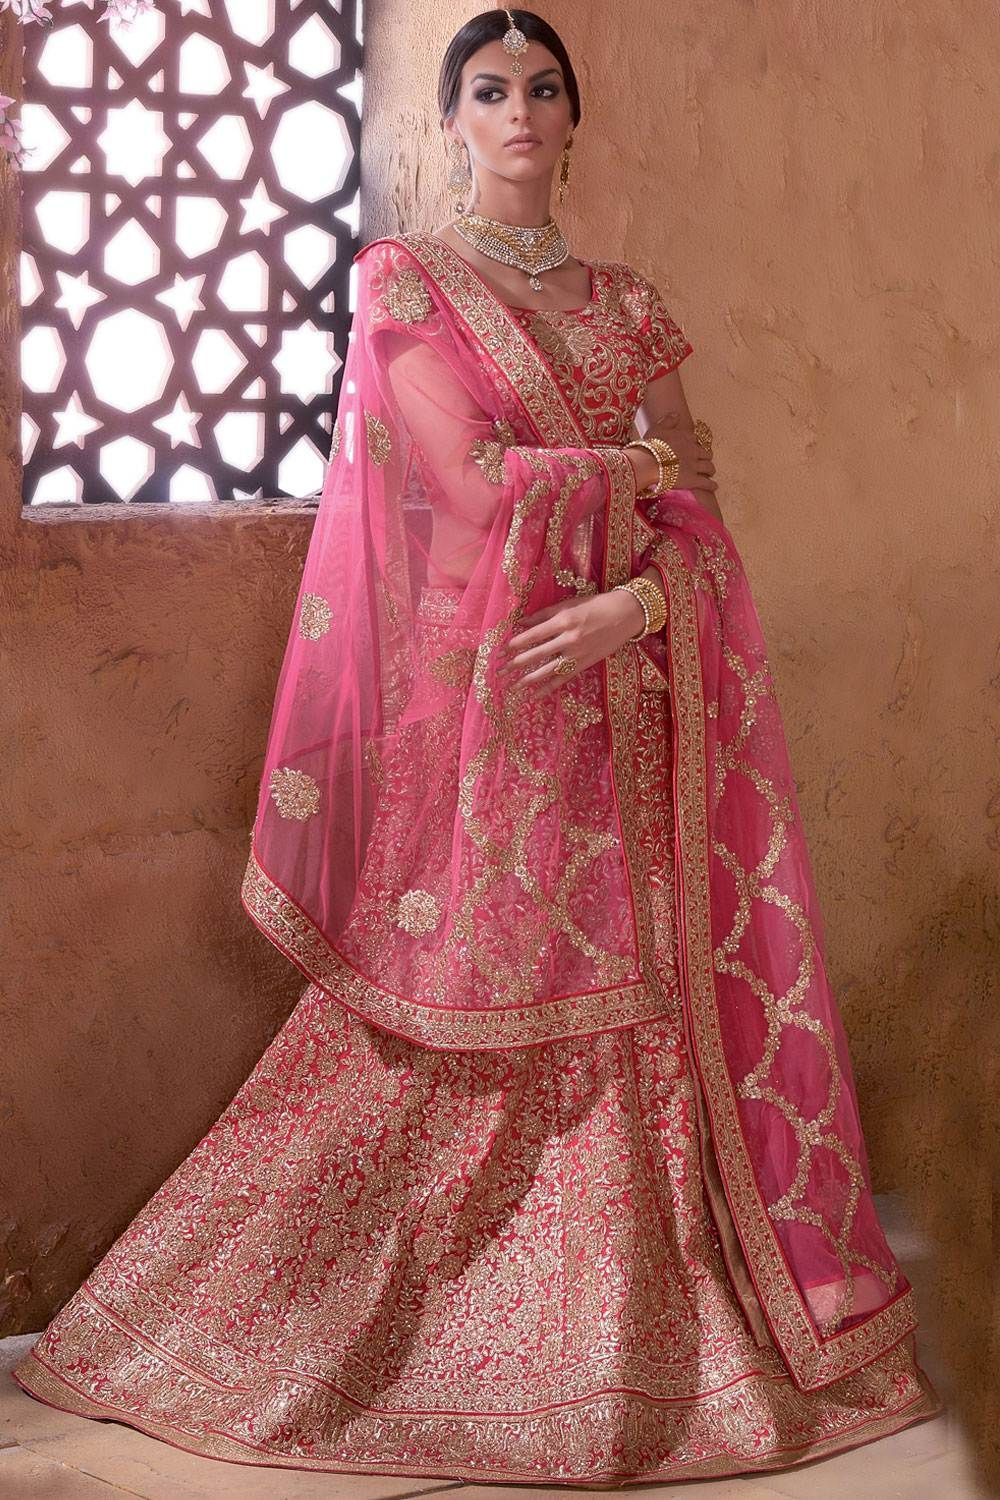 350637d782 Beautiful wedding Lehenga choli colletion for Marriage. Buy Indian wedding lehengas  choli with varieties of designs and collection for women at #www.